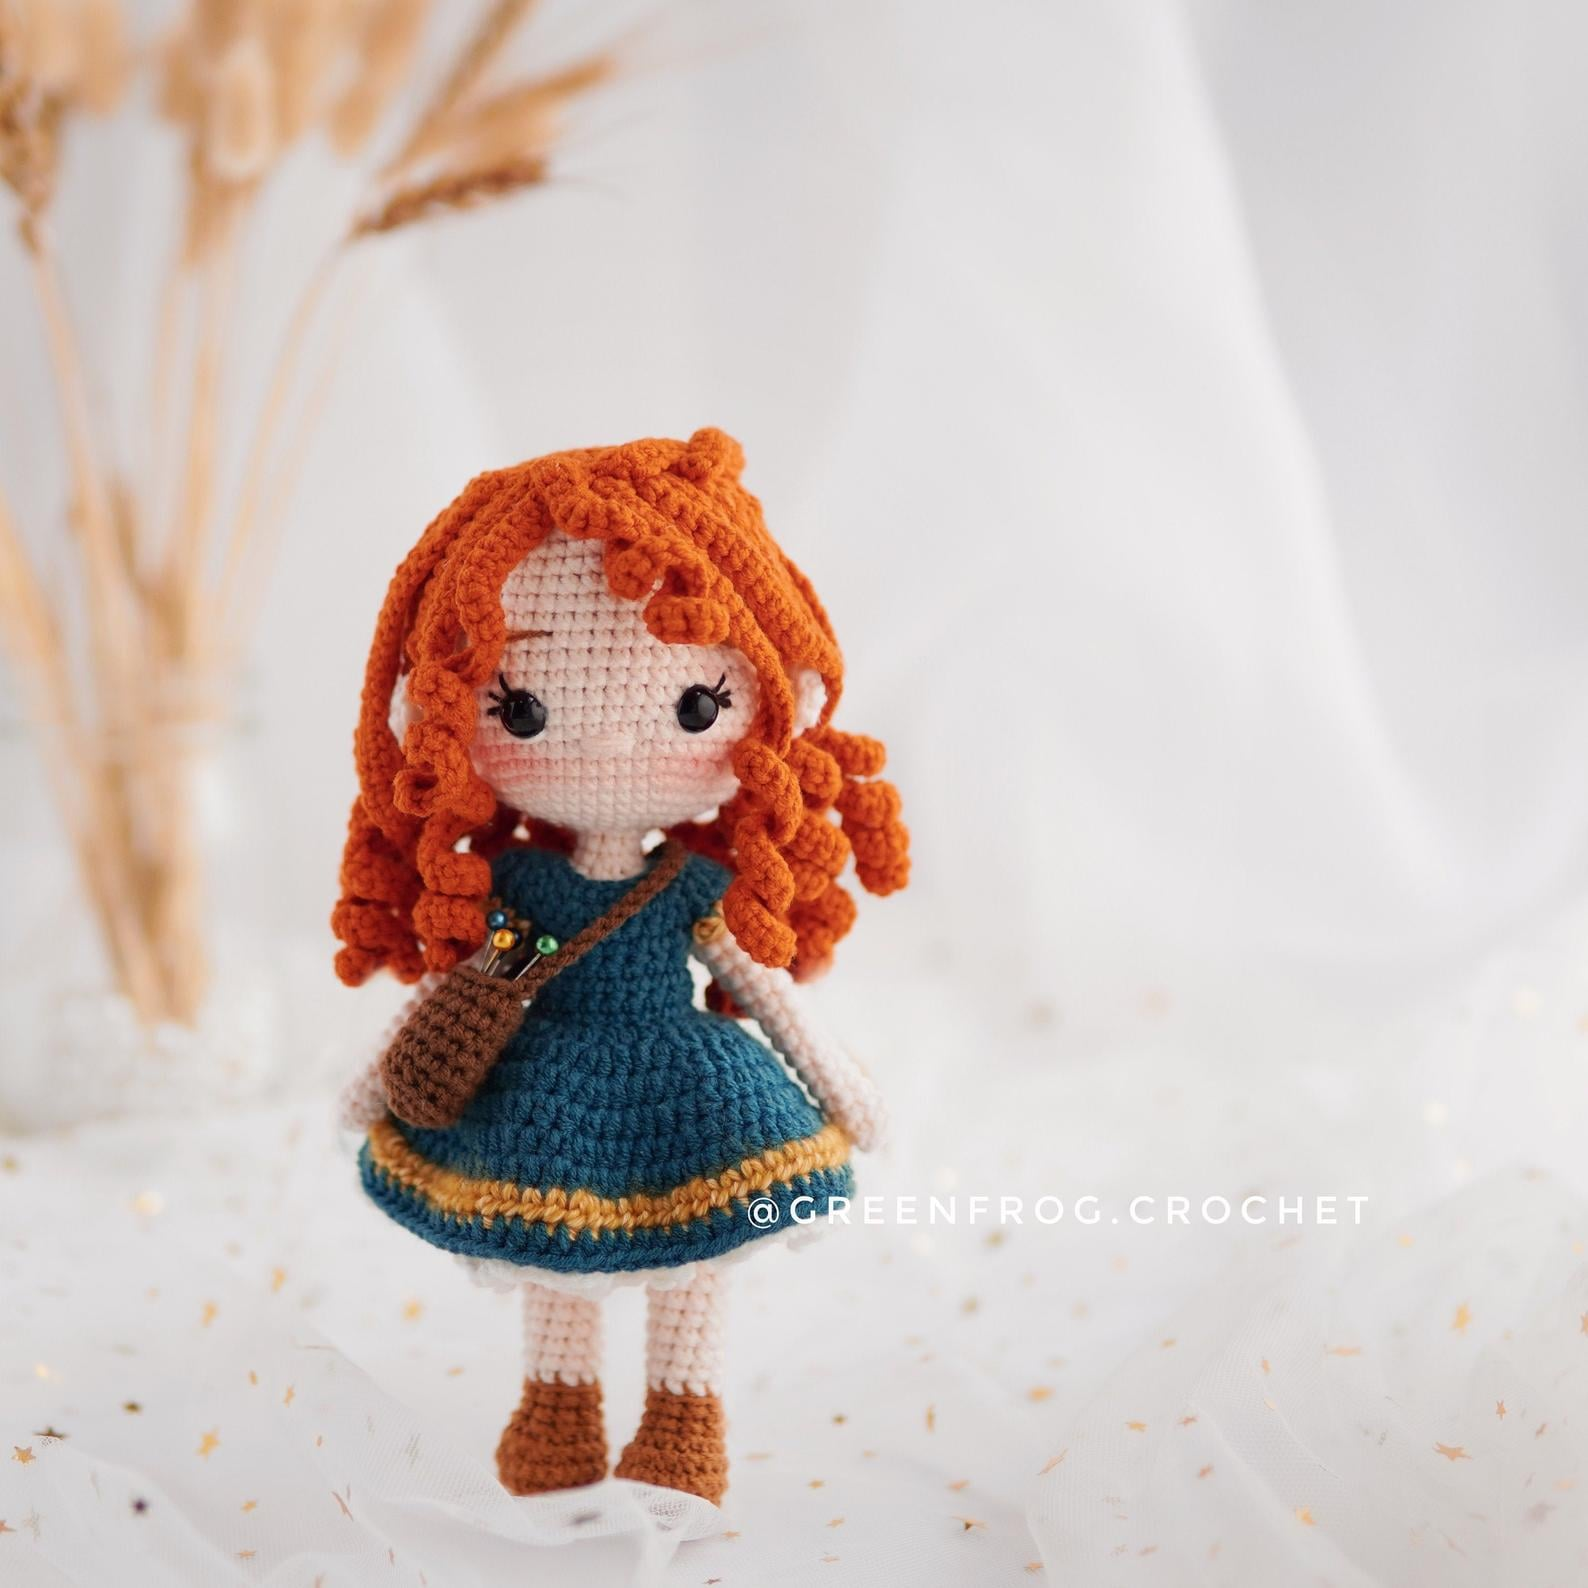 Crochet Doll Amigurumi . Sofy Base Body Doll Crochet pattern by ... | 1588x1588